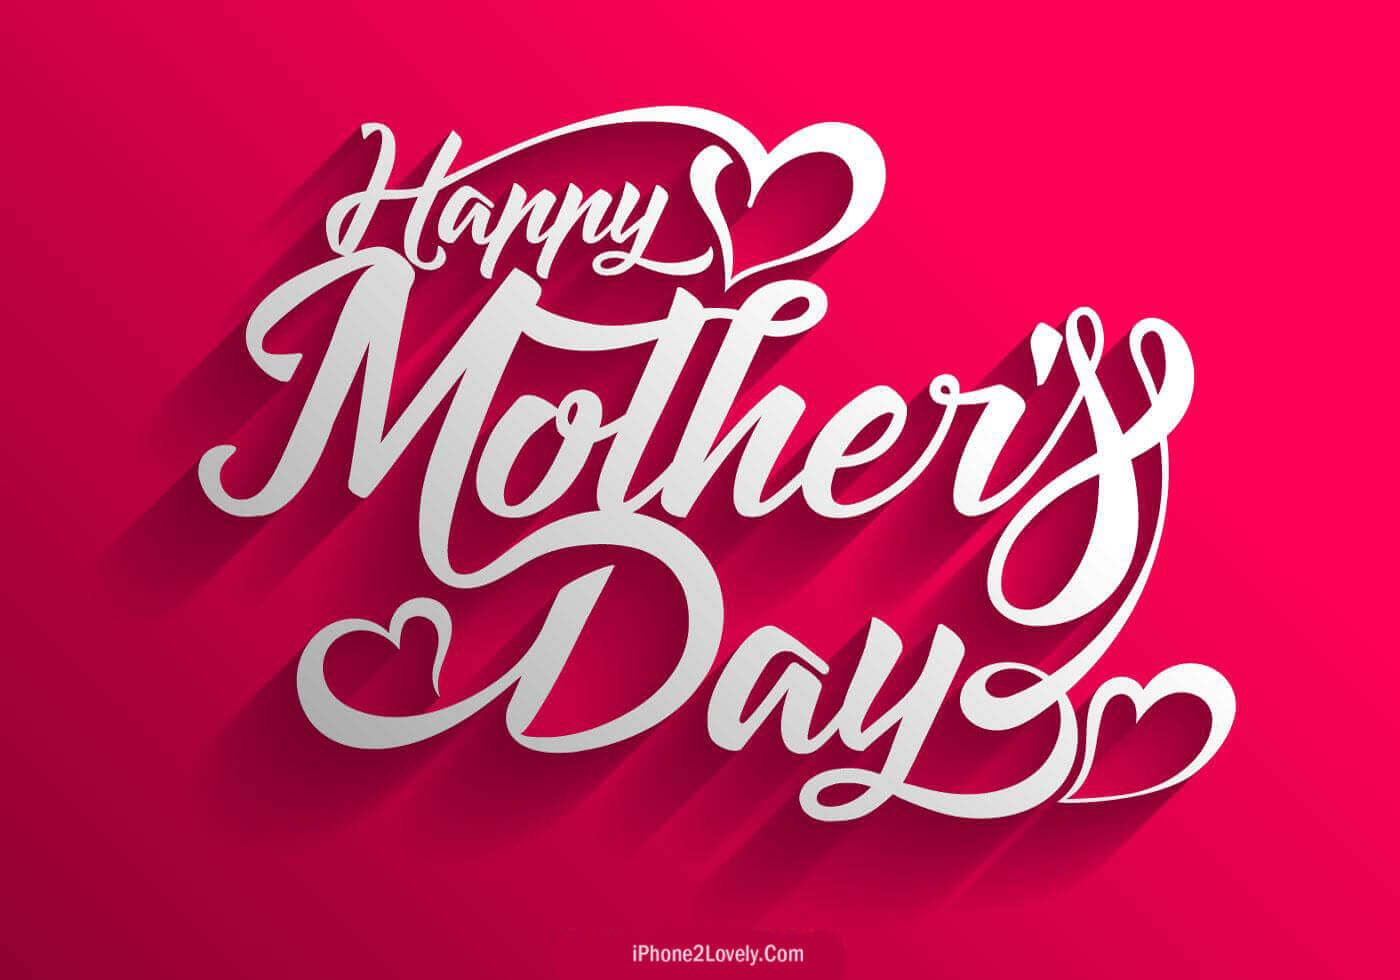 Happy Mothers Day Images   Happy Mothers Day Vectors   1400x980 1400x980